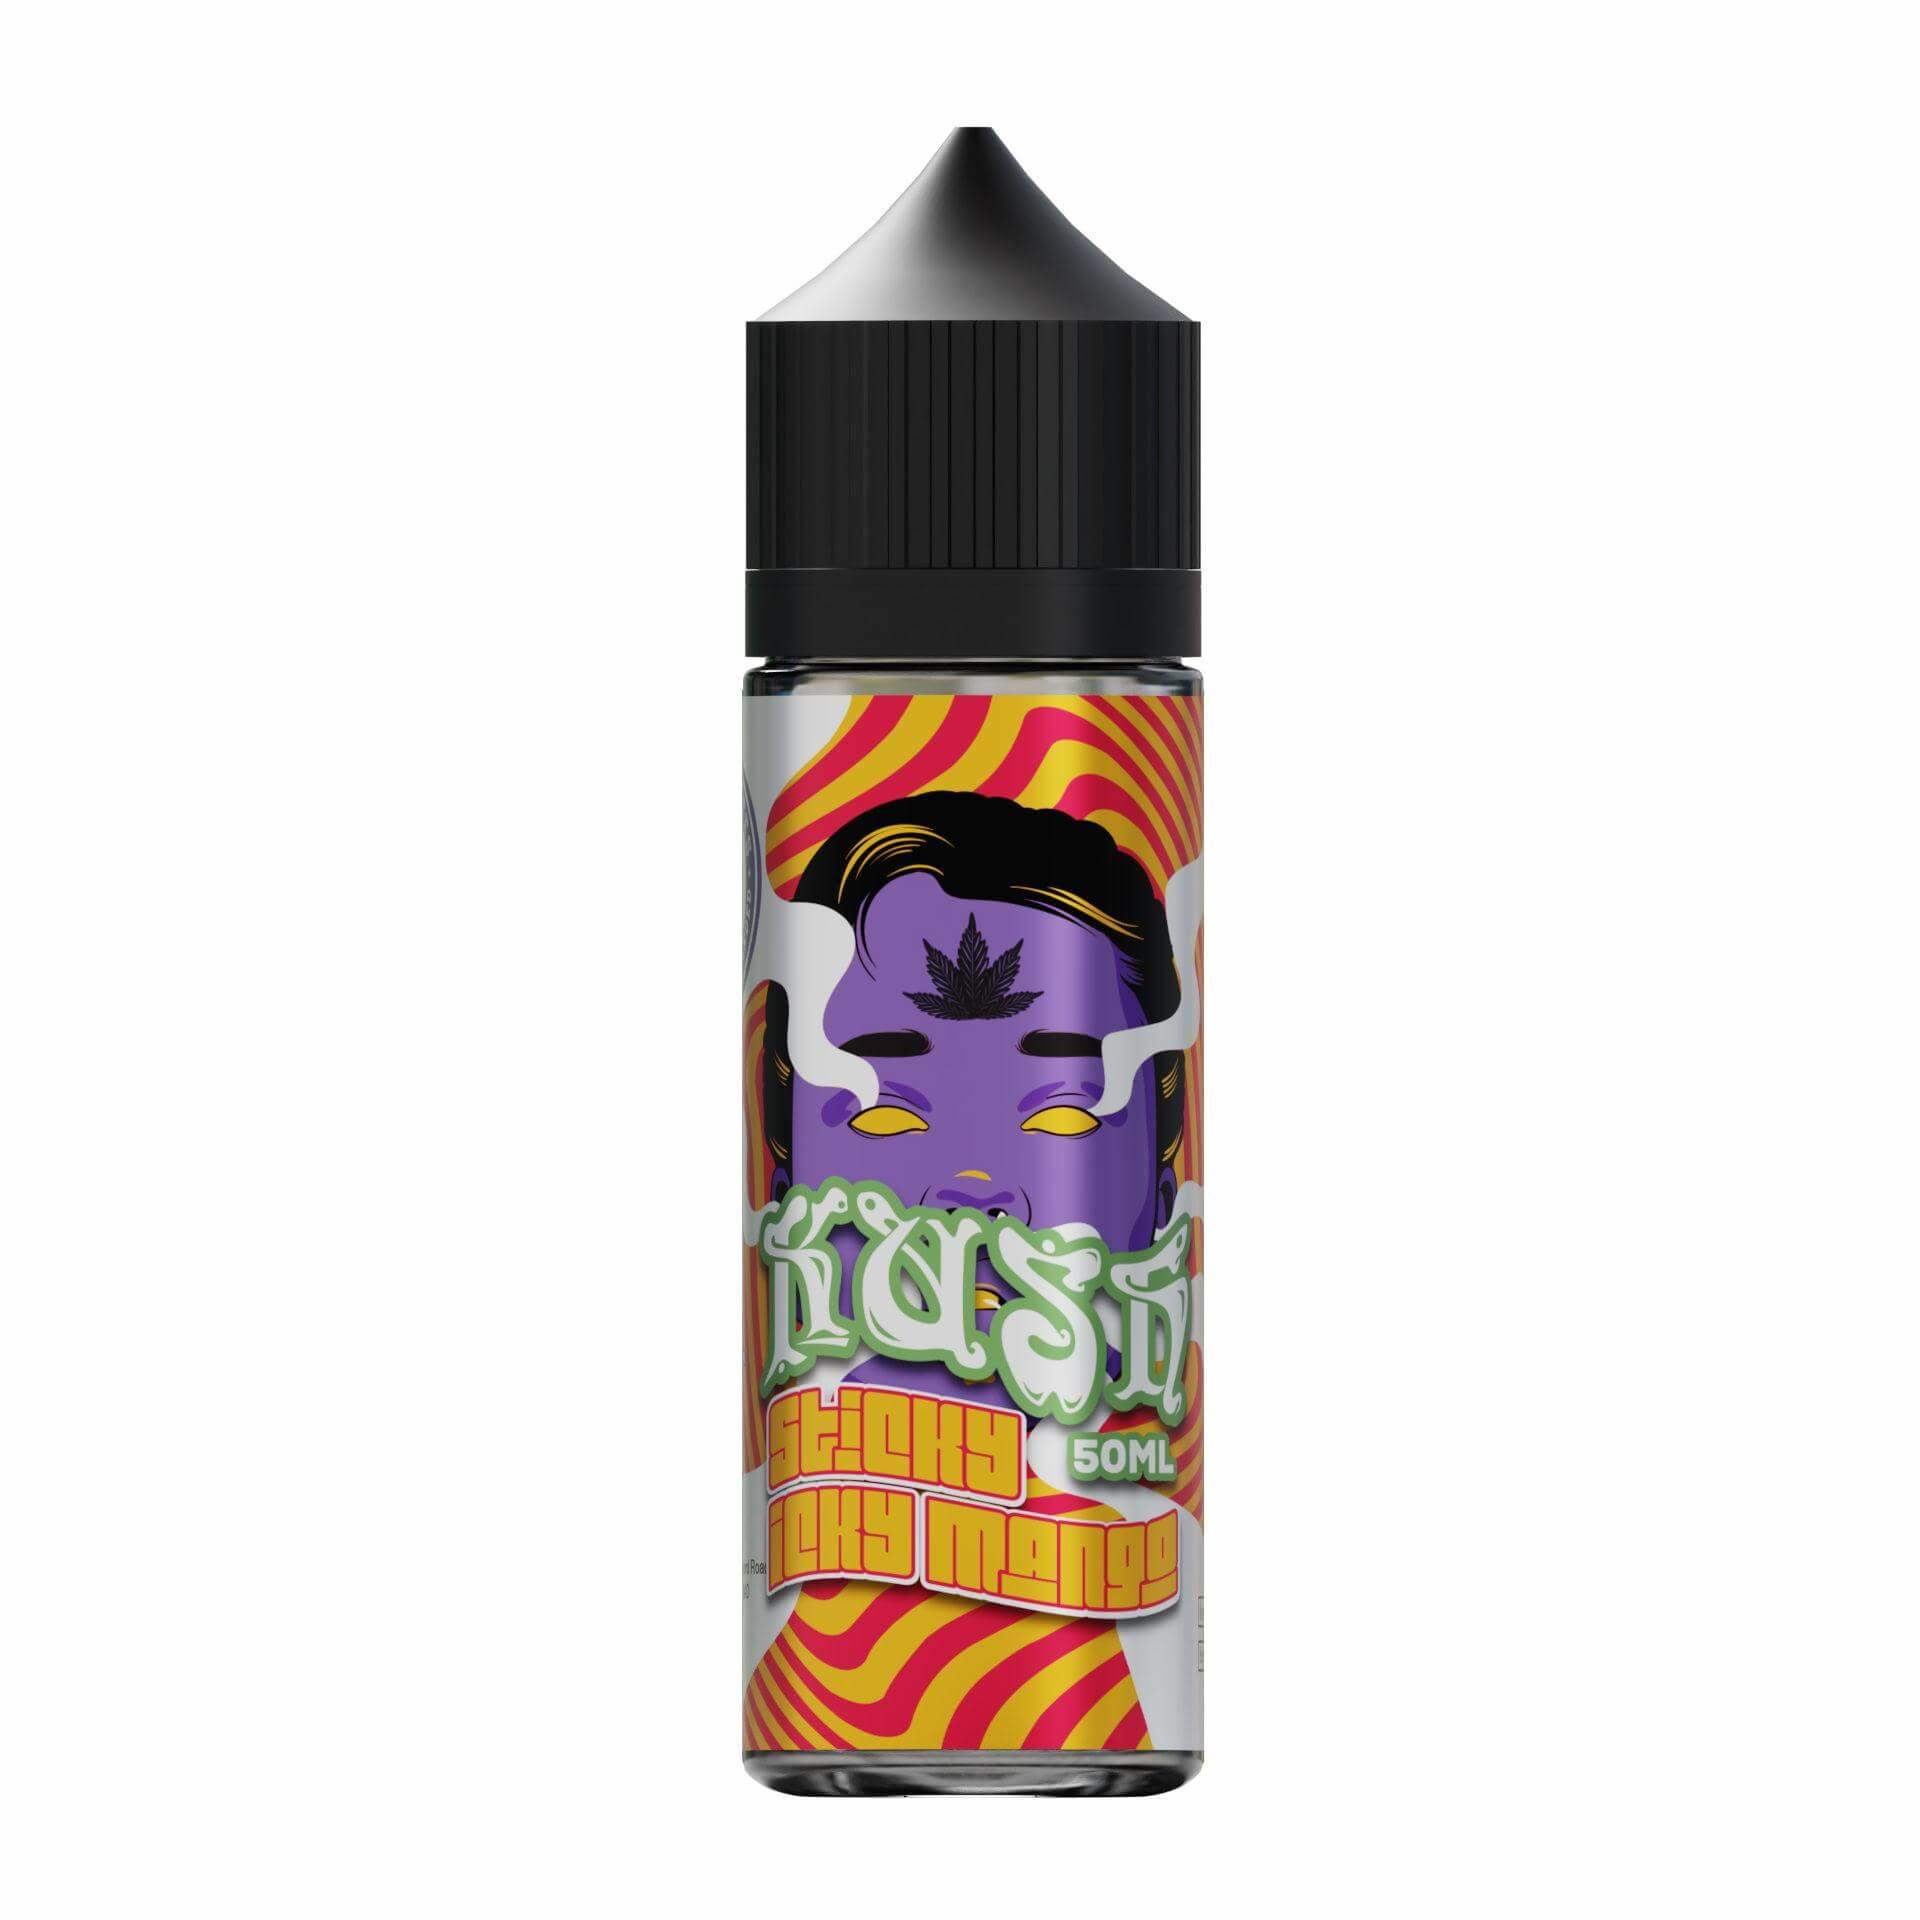 Sticky Icky Mango Kush Range 0mg Short Fill E Liquid